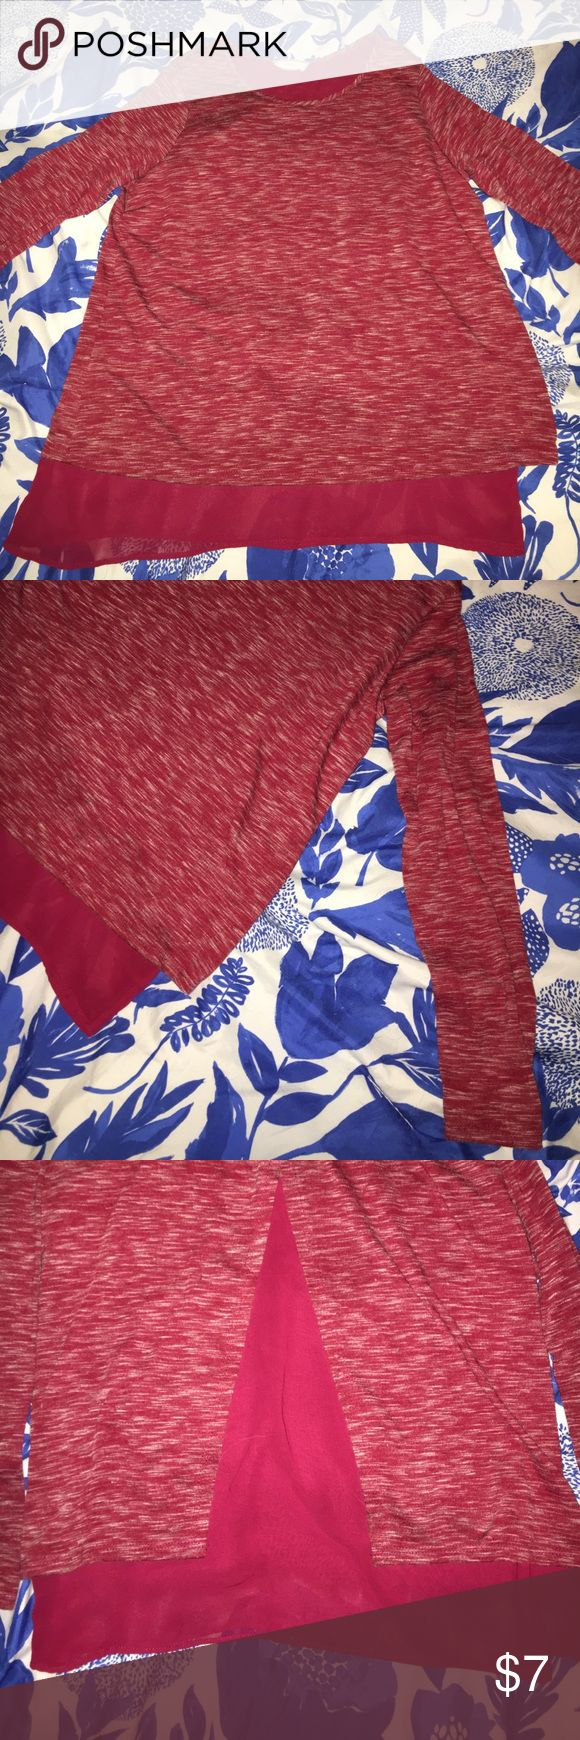 Red Blouse In perfect condition. Solid red material is sheer. Bundle kids clothes to save big. Soprano Shirts & Tops Blouses